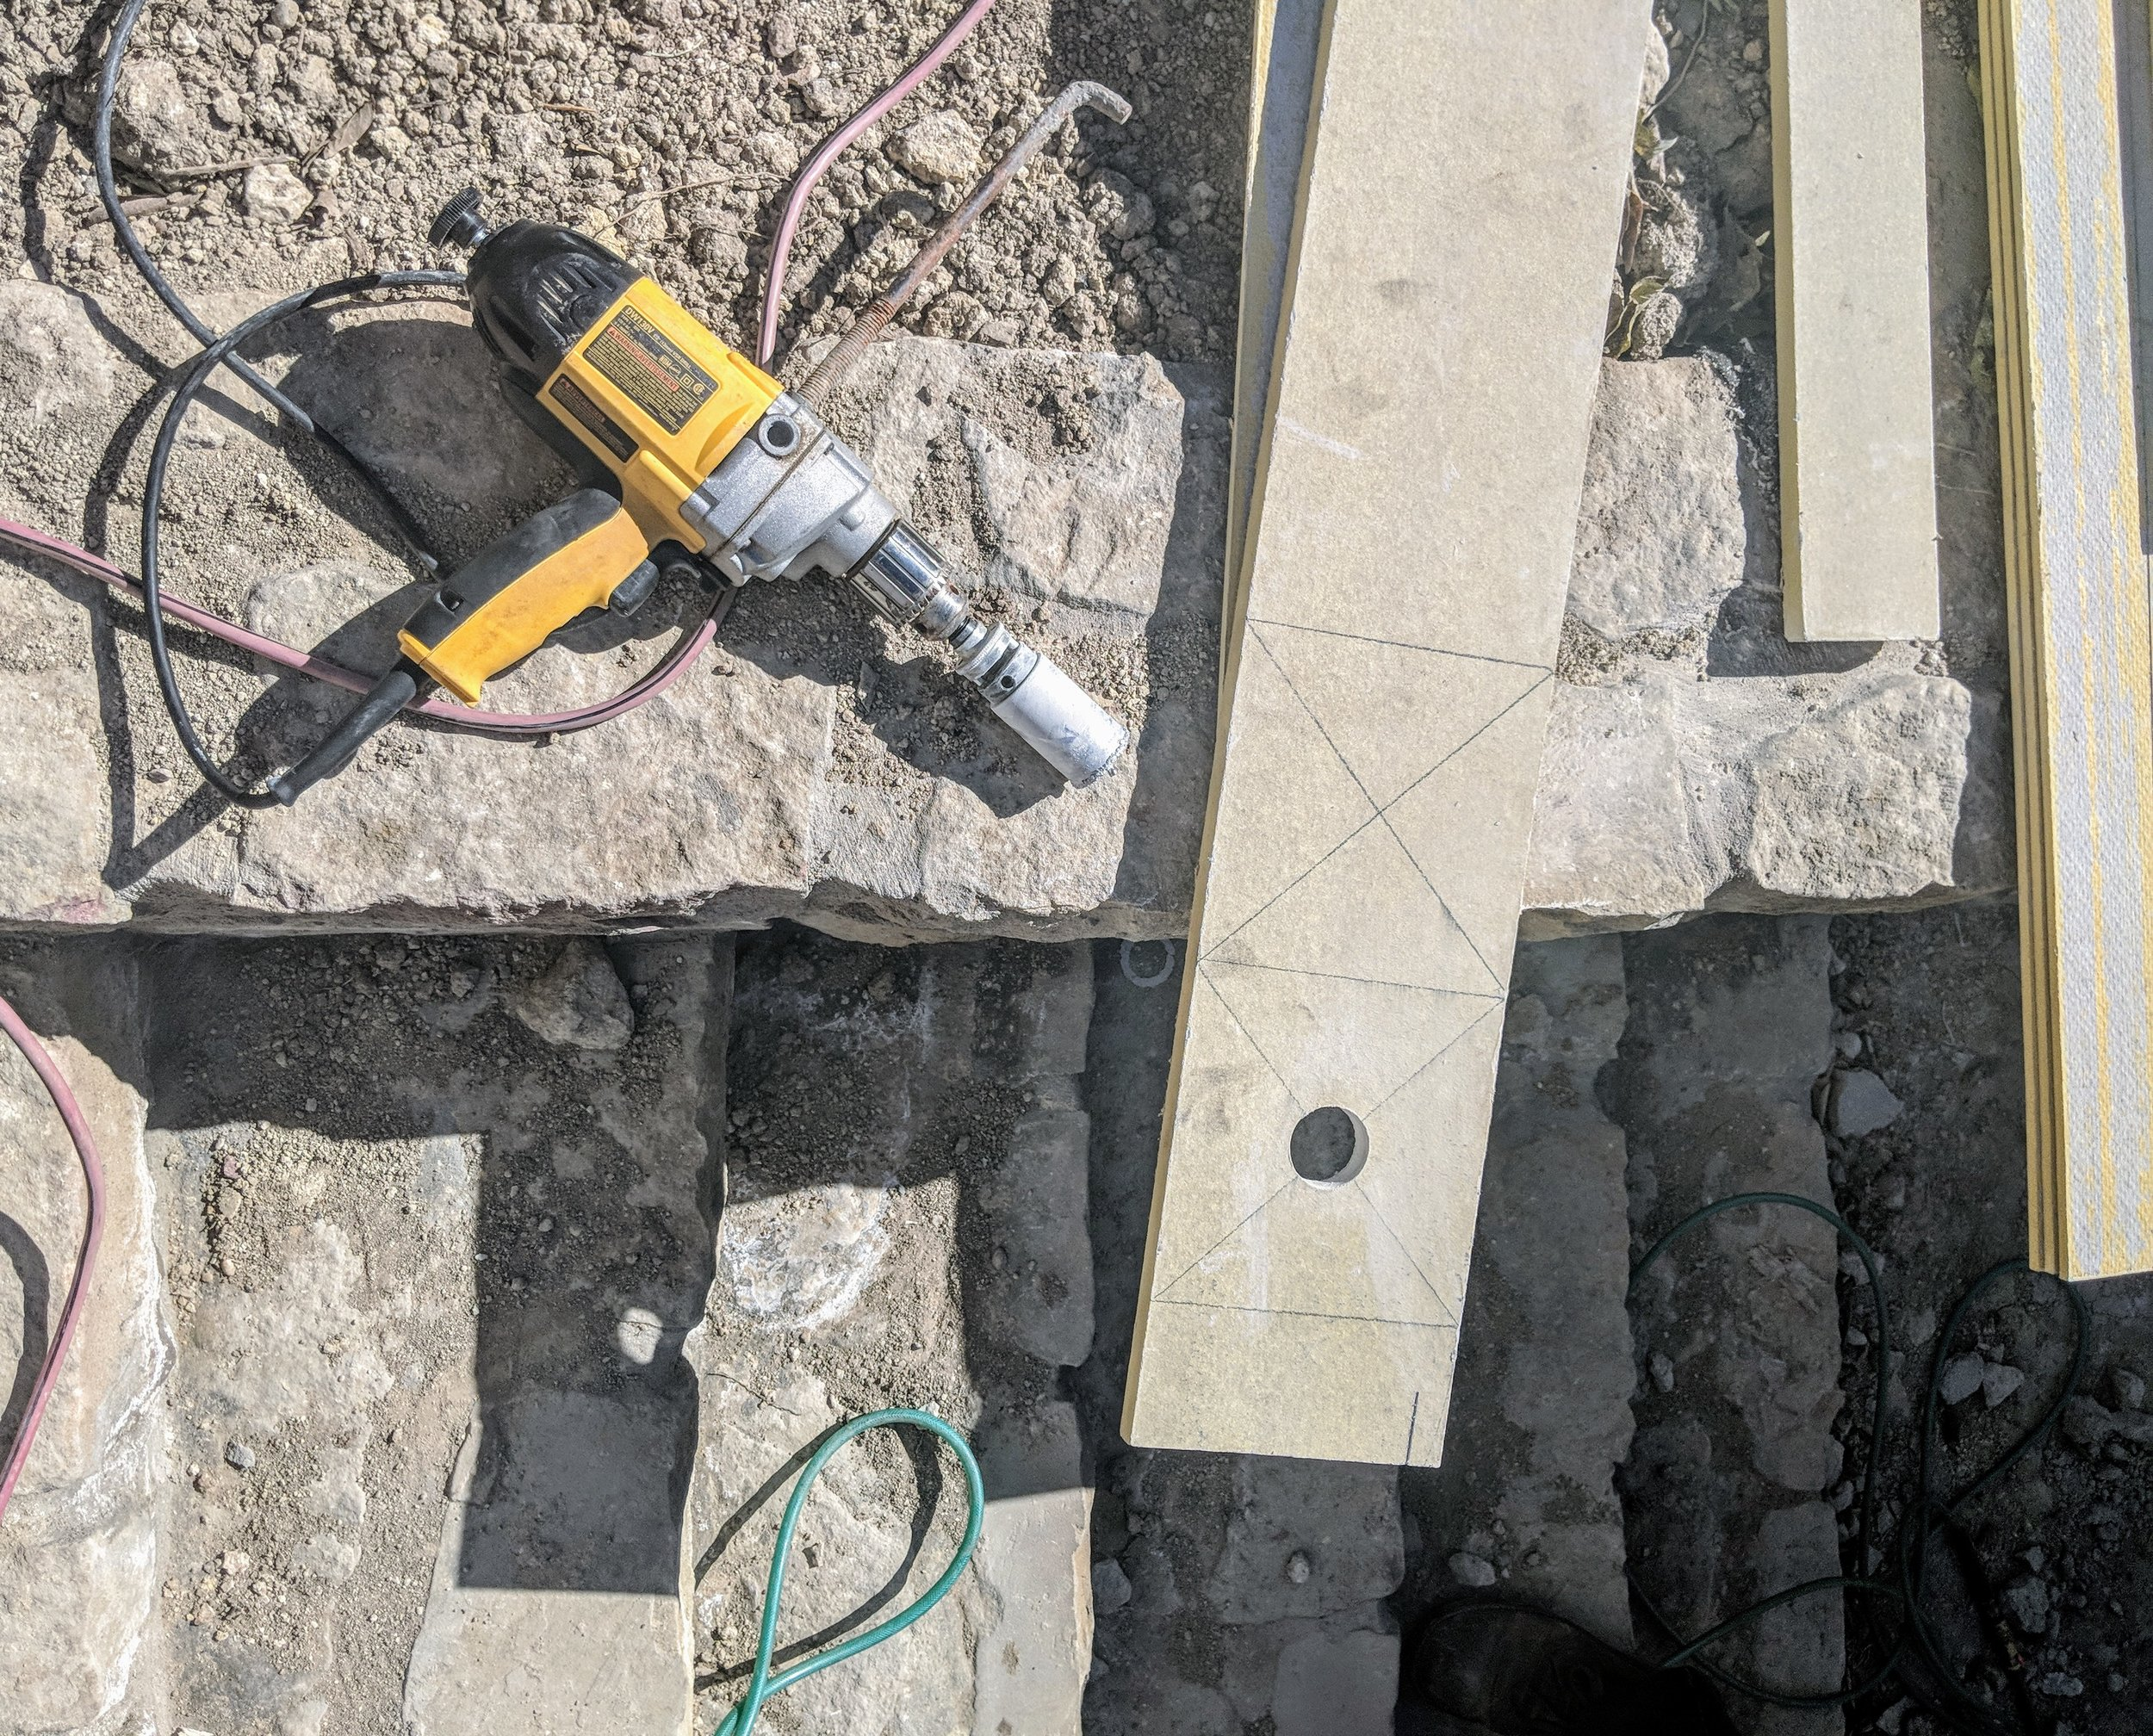 """If we don't have Sturdimounts on hand, we will use a hole saw to cut through a 3/4"""" trim board, works just as well. Note: hole saws are not part of the average cornice crew or framer's tool bag. This is our own equipment."""